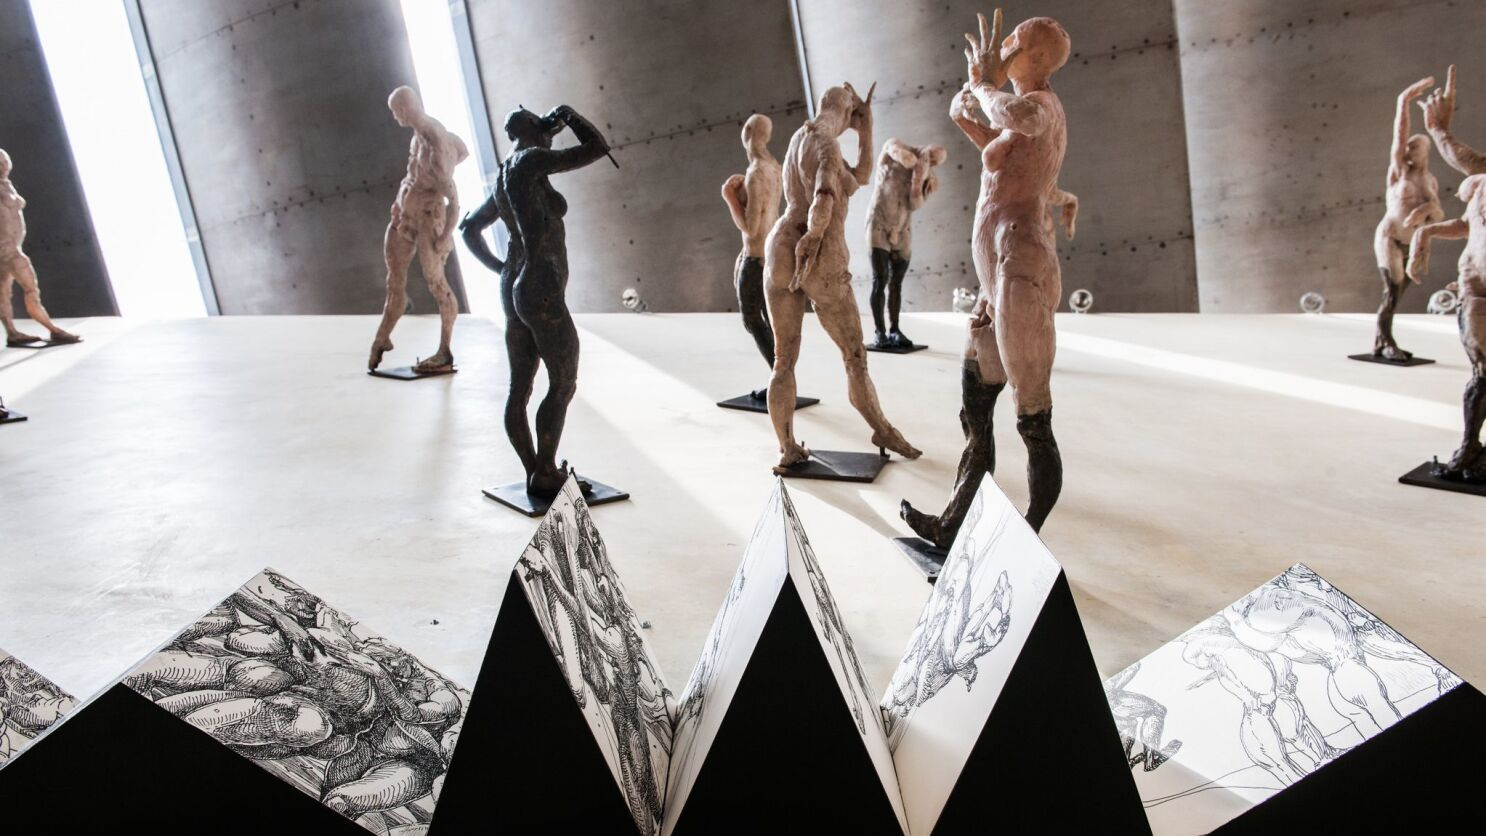 Mexican sculptor Javier Marín's body of work explores what it means to be human